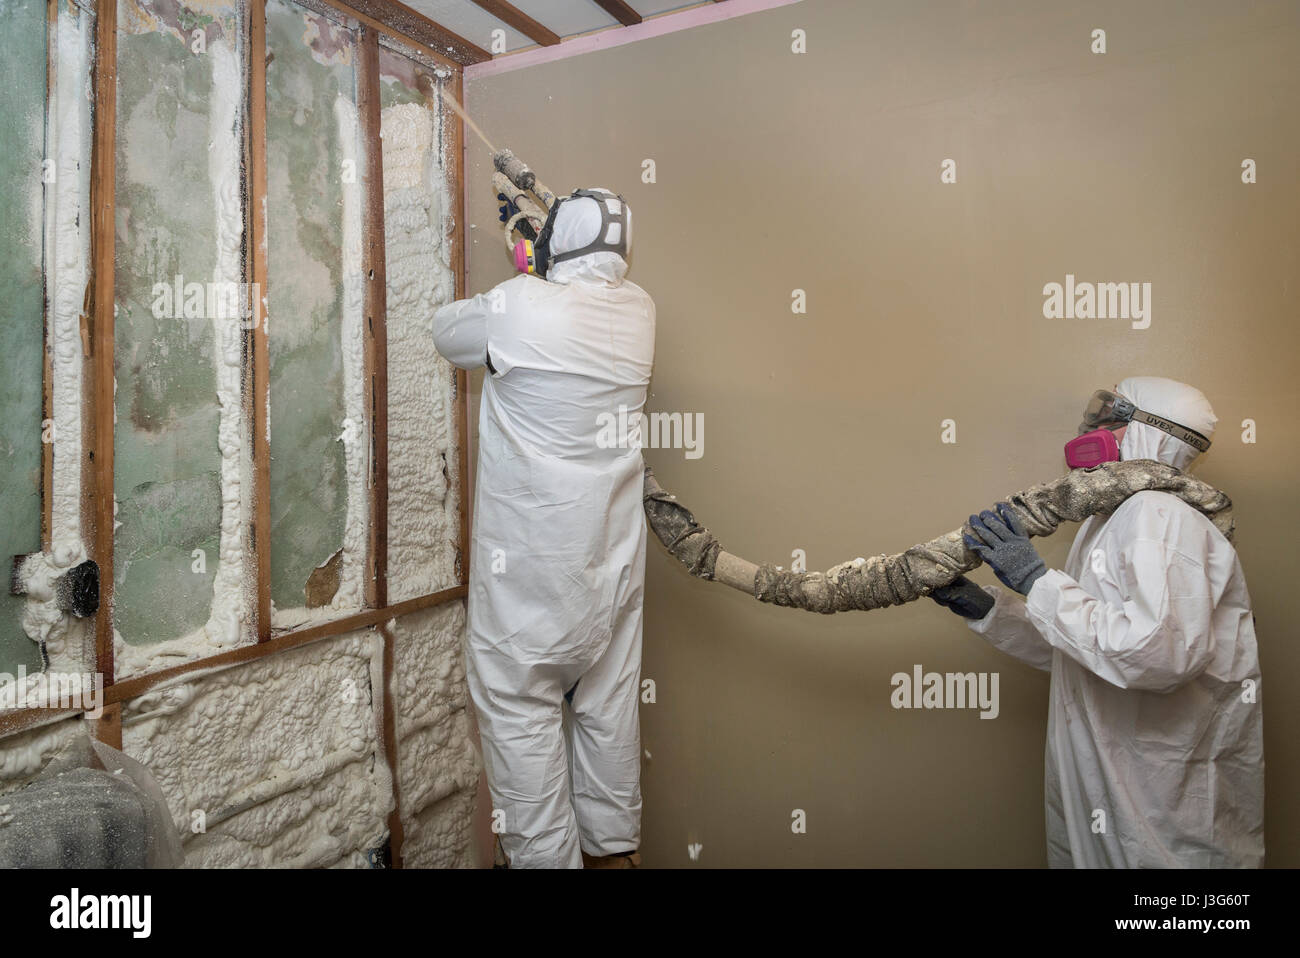 Workers Spraying Open Cell Foam Insulation On Interior Walls Of Home - Stock Image